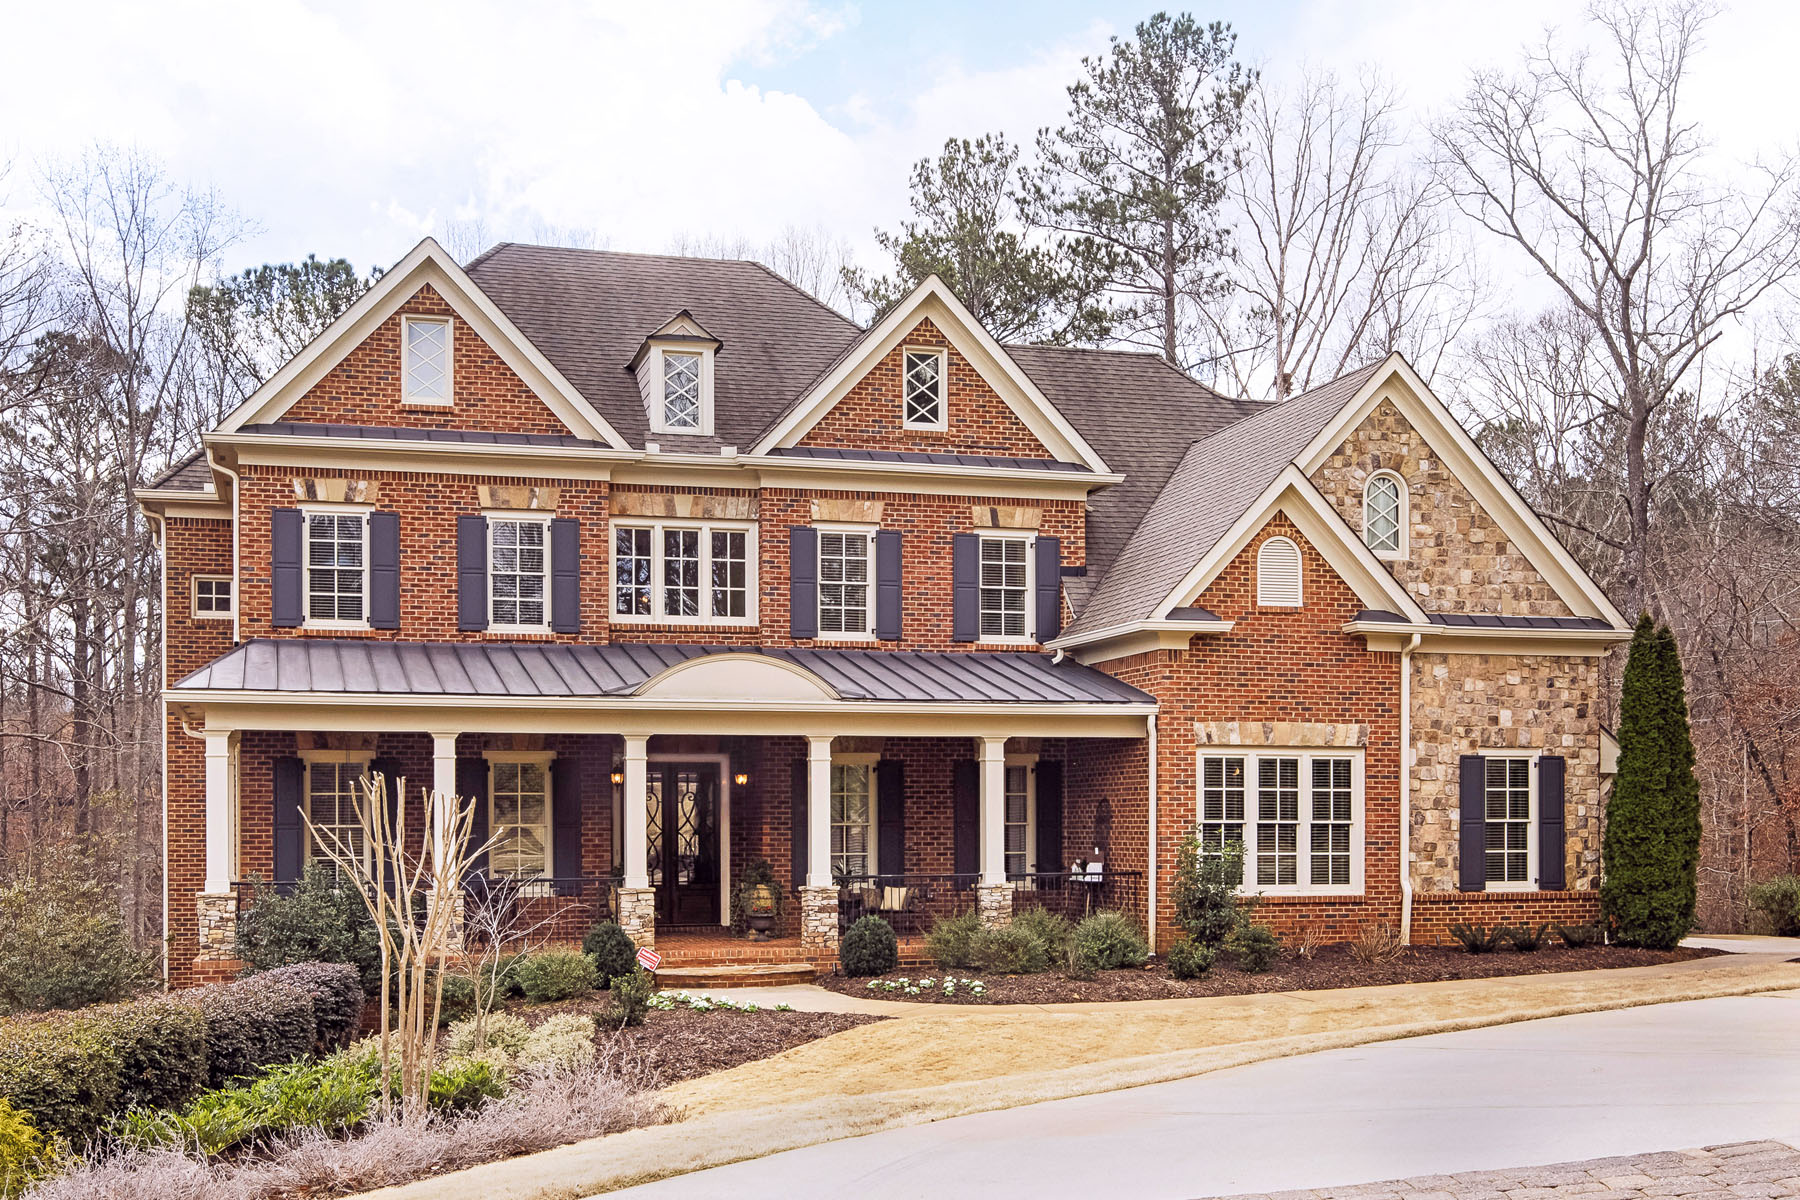 Single Family Home for Sale at Secluded Privacy in a 1.55 +/- Acre Mountain-like Setting 1380 Cashiers Way Roswell, Georgia, 30075 United States